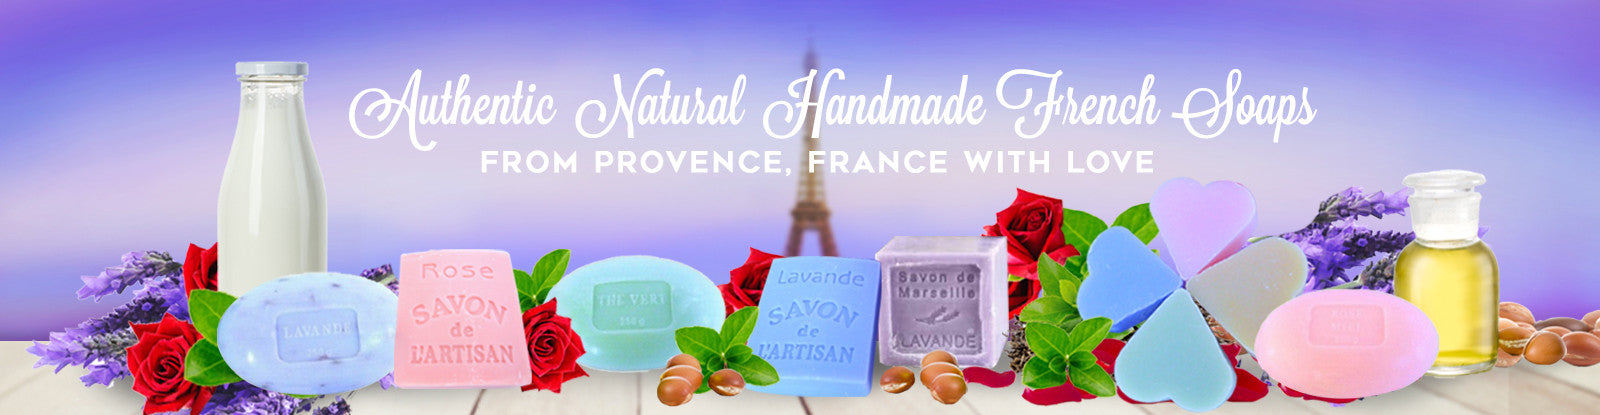 World's Premium Handmade Natural Soaps from France